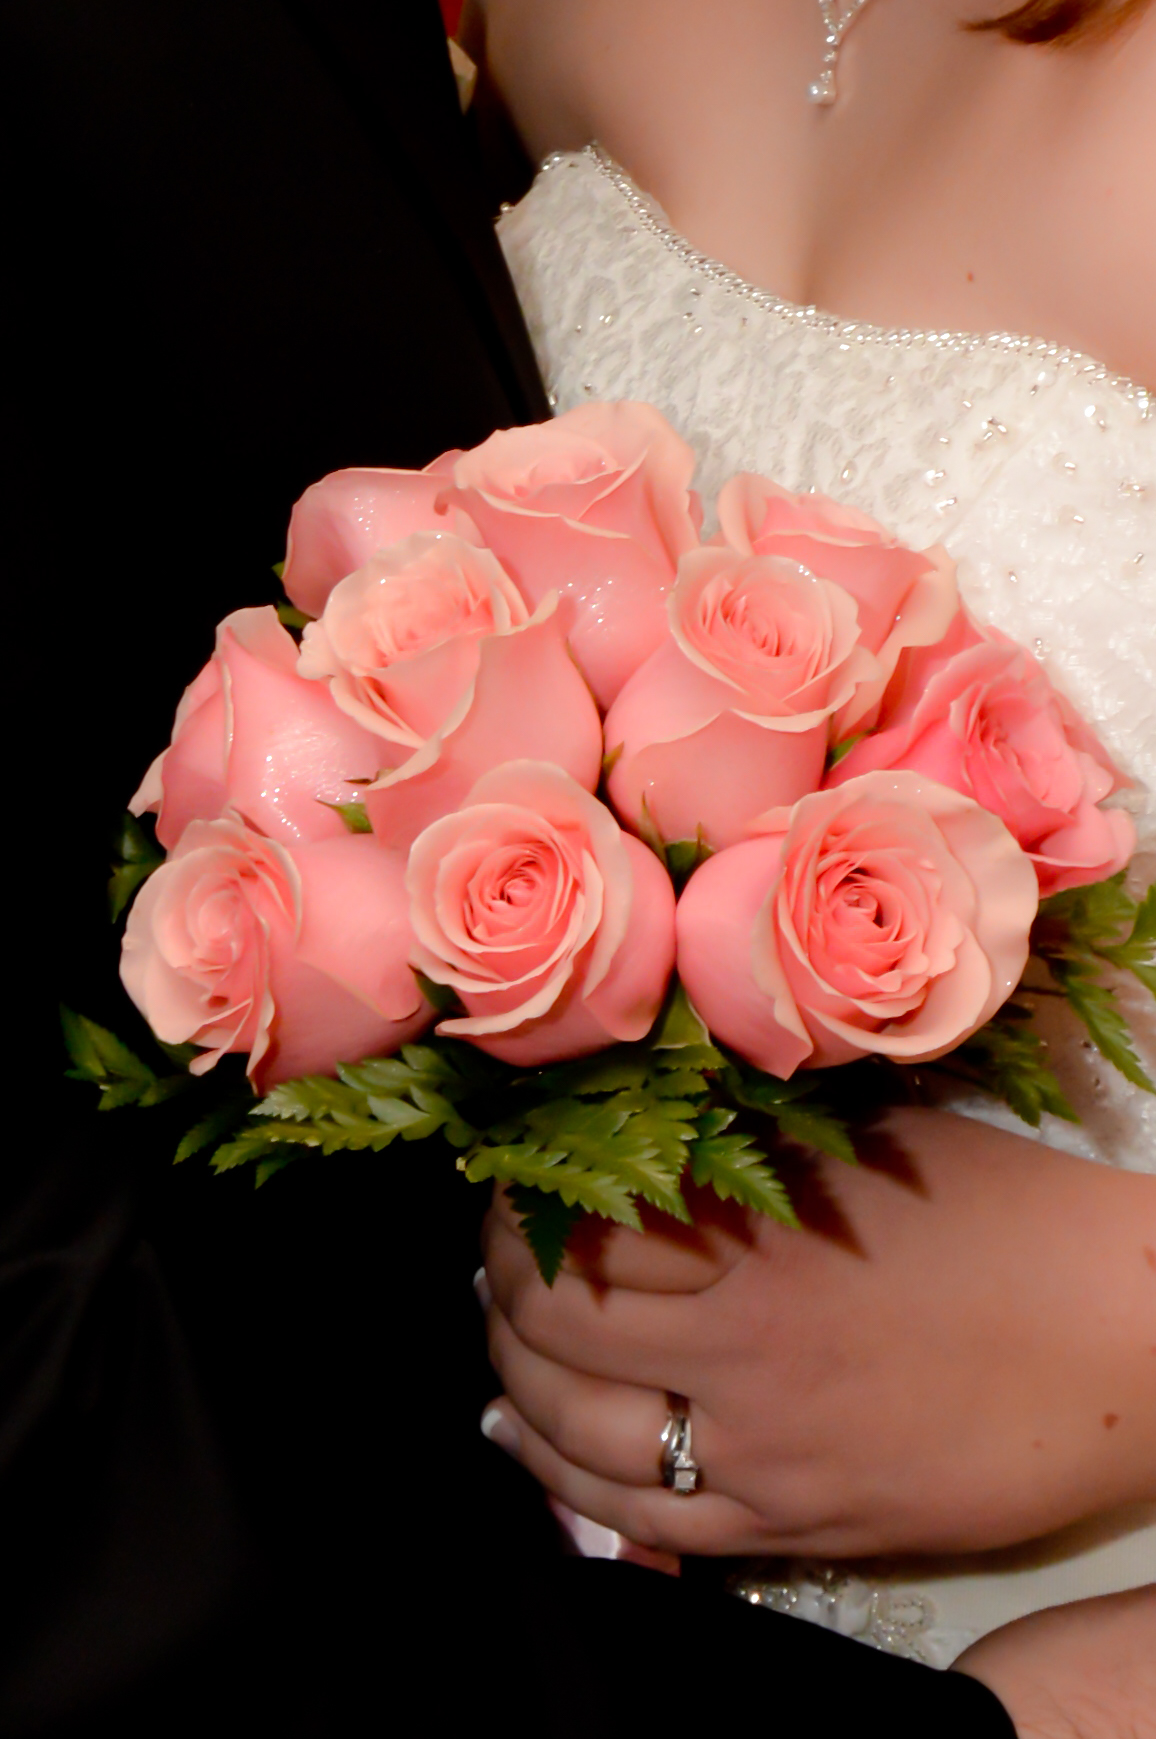 Twelve Rose Hand Tied Bouquets - Las Vegas Weddings